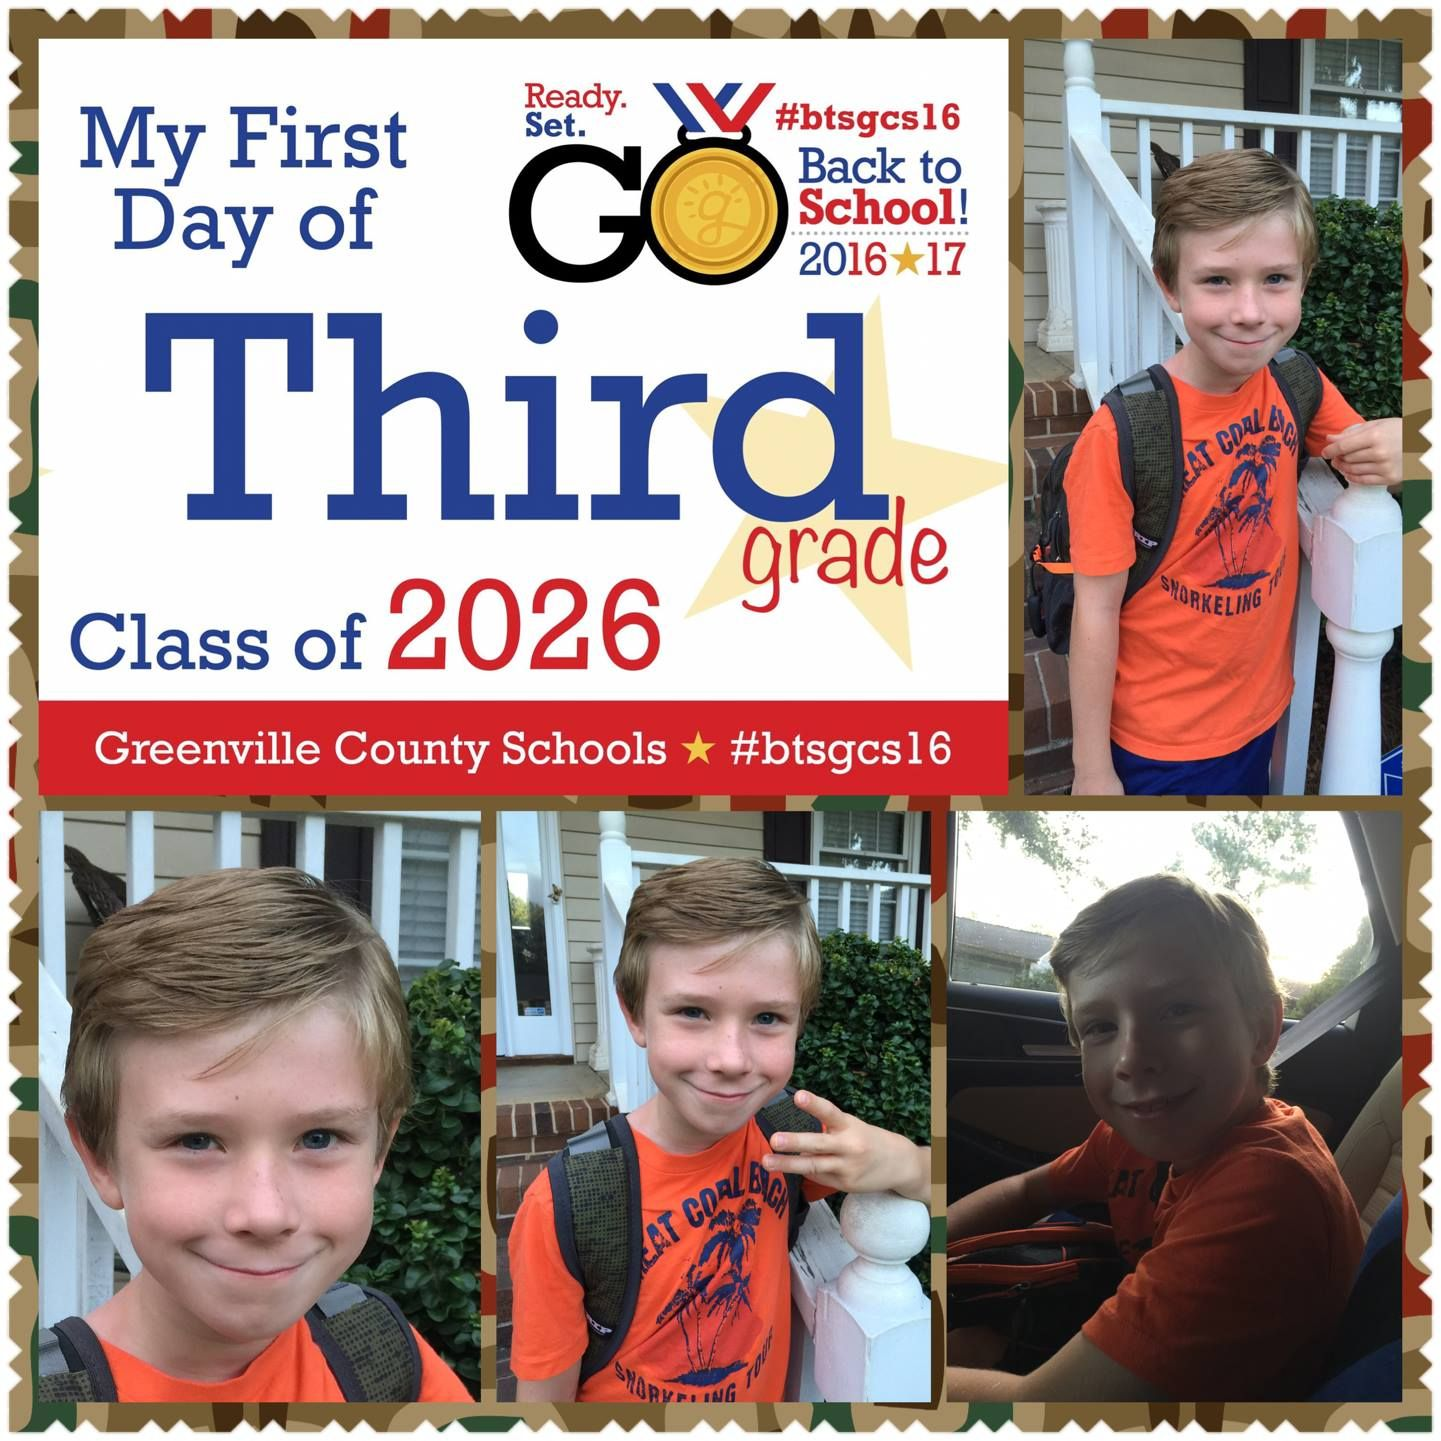 First Day of School Pictures - Photo 76